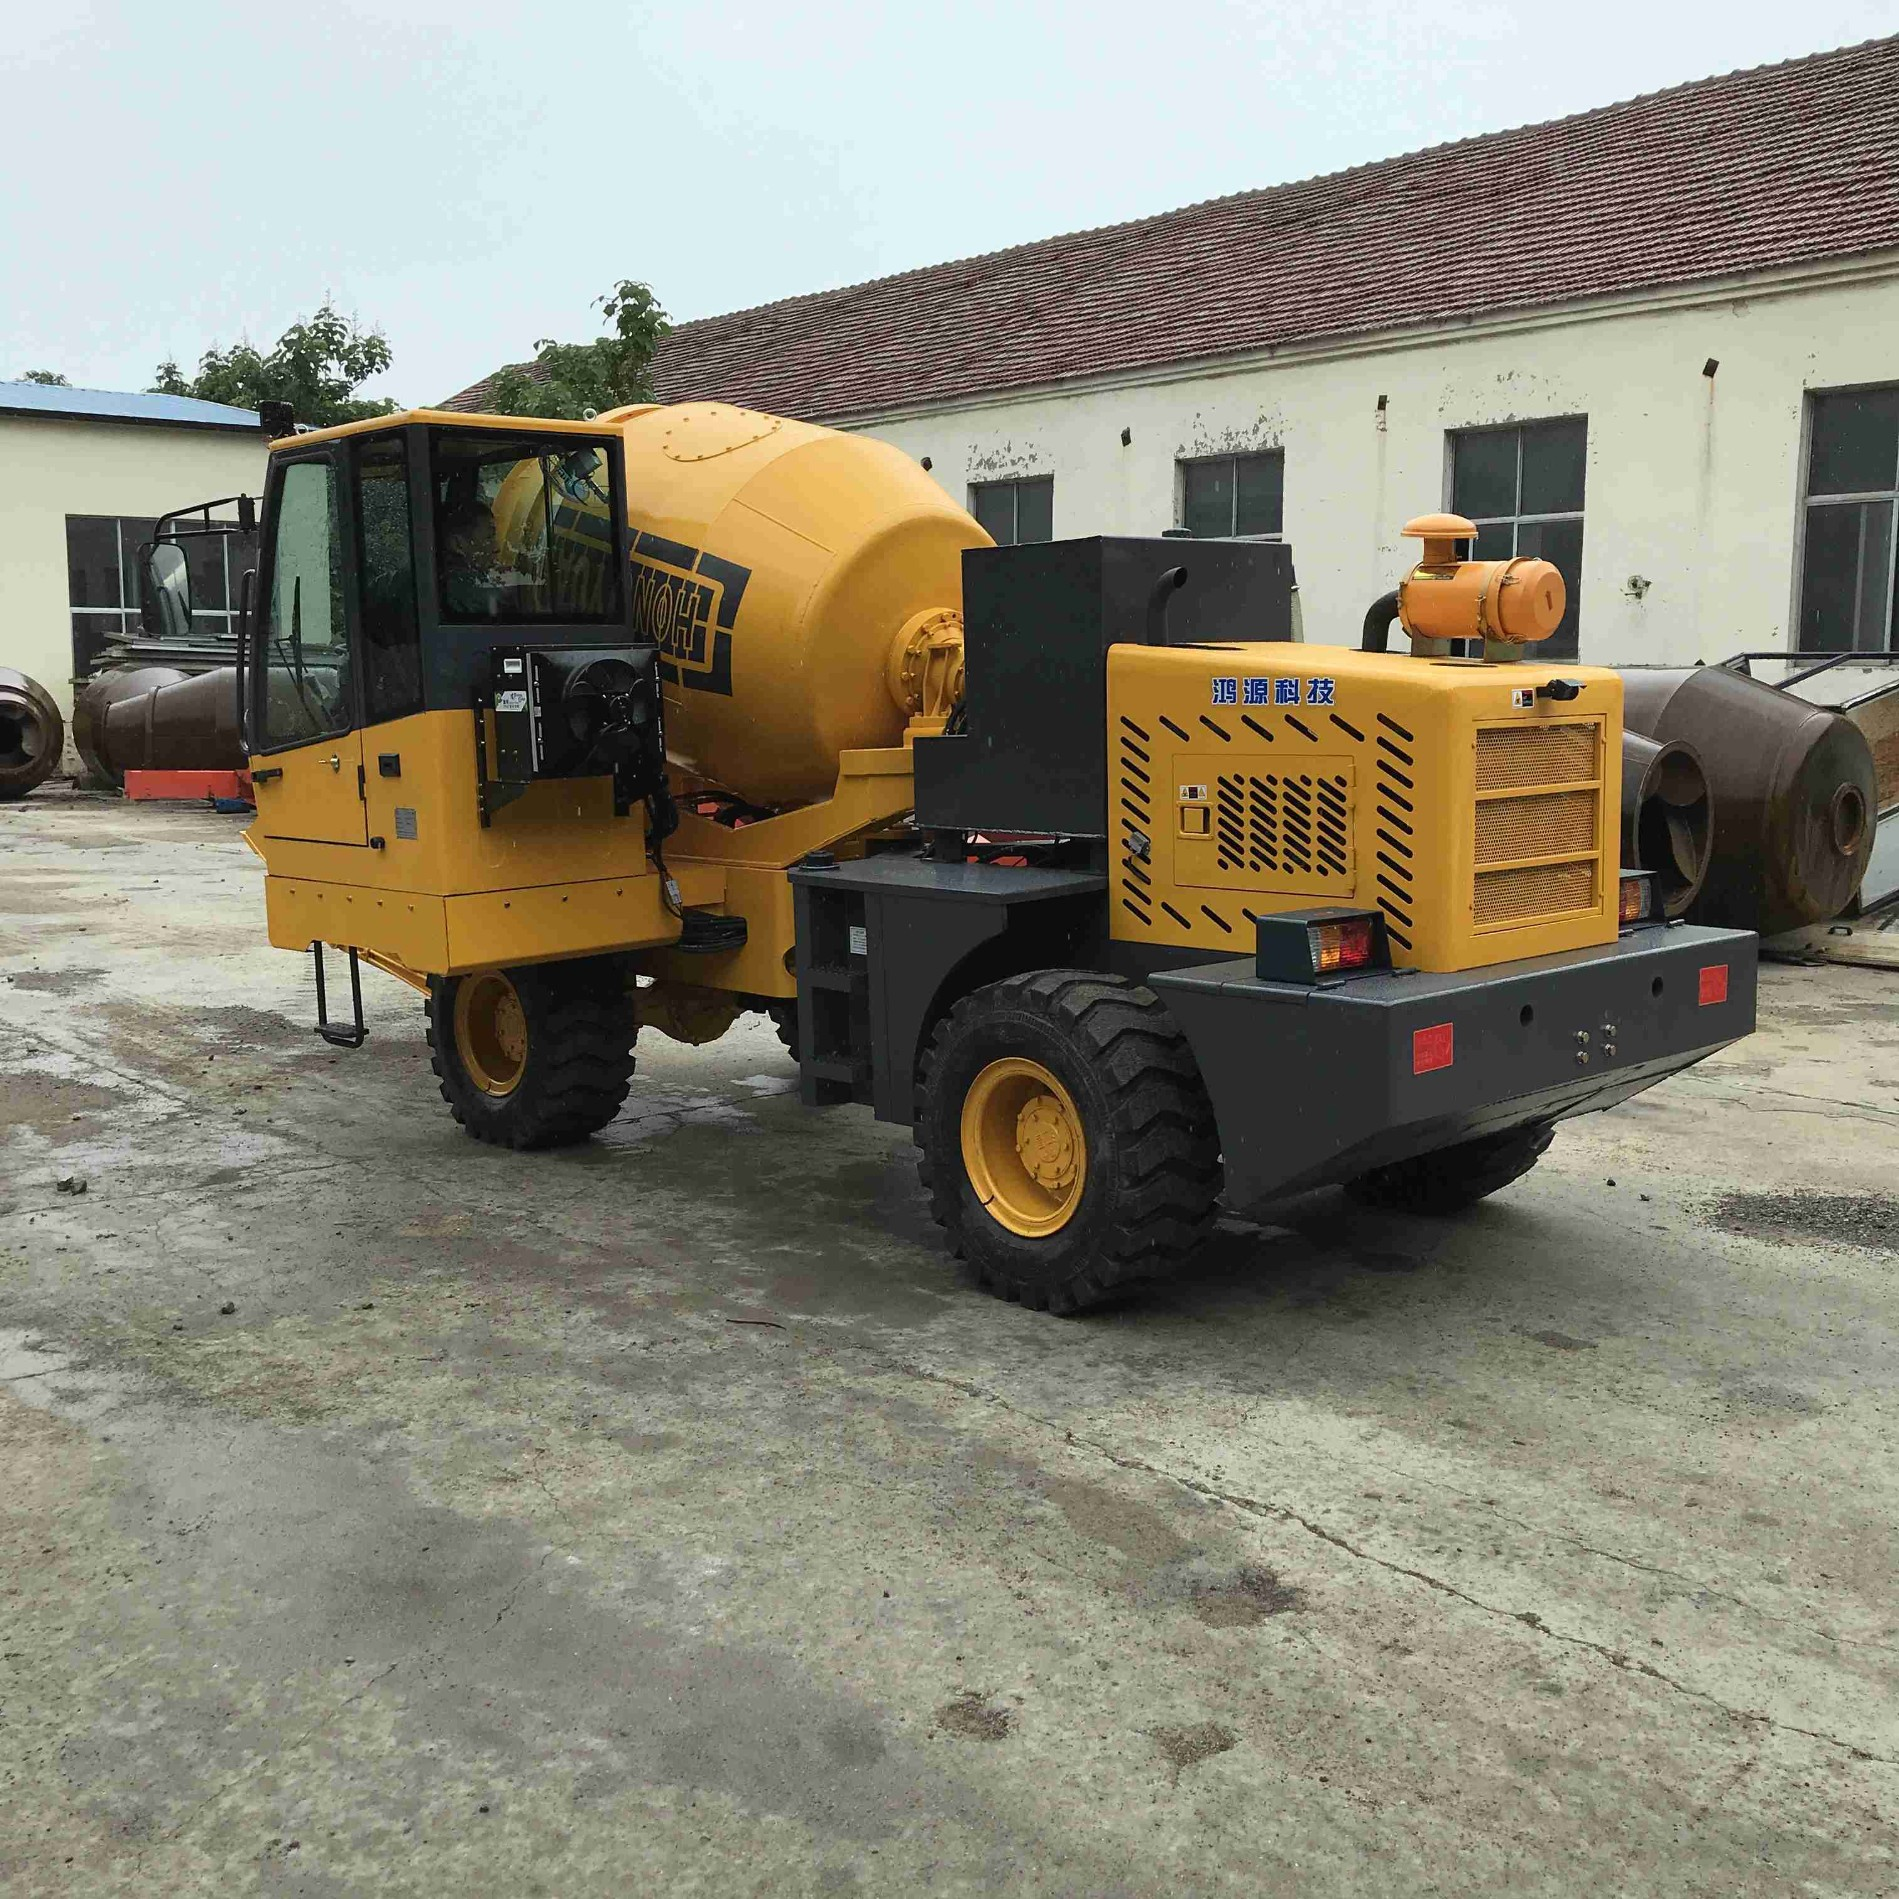 Sales Used Front Discharge Concrete Trucks For Sale, Buy Used Front Discharge Concrete Trucks For Sale, Used Front Discharge Concrete Trucks For Sale Factory, Used Front Discharge Concrete Trucks For Sale Brands